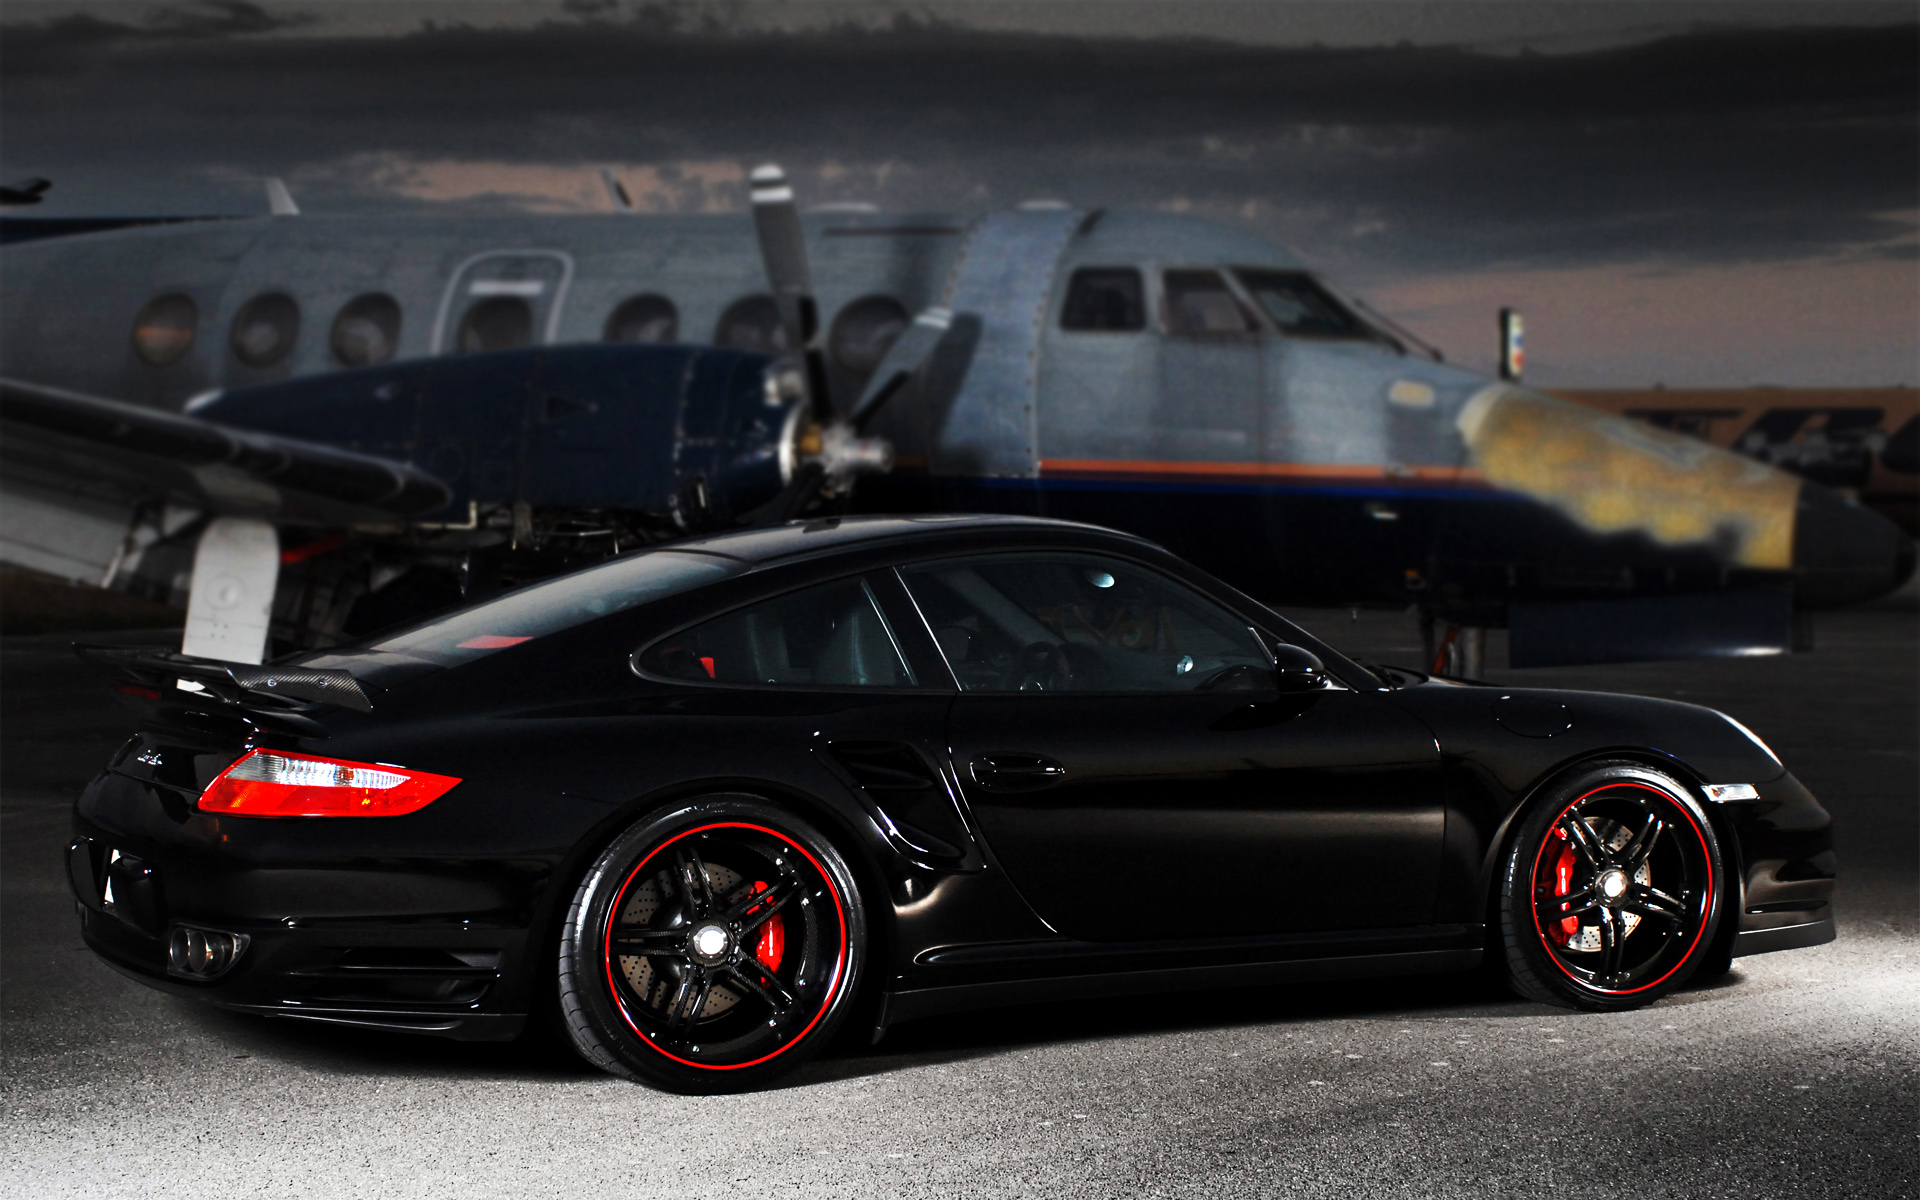 Download Porsche 911 Turbo Black Super Cars HD Wallpapers 1920x1200